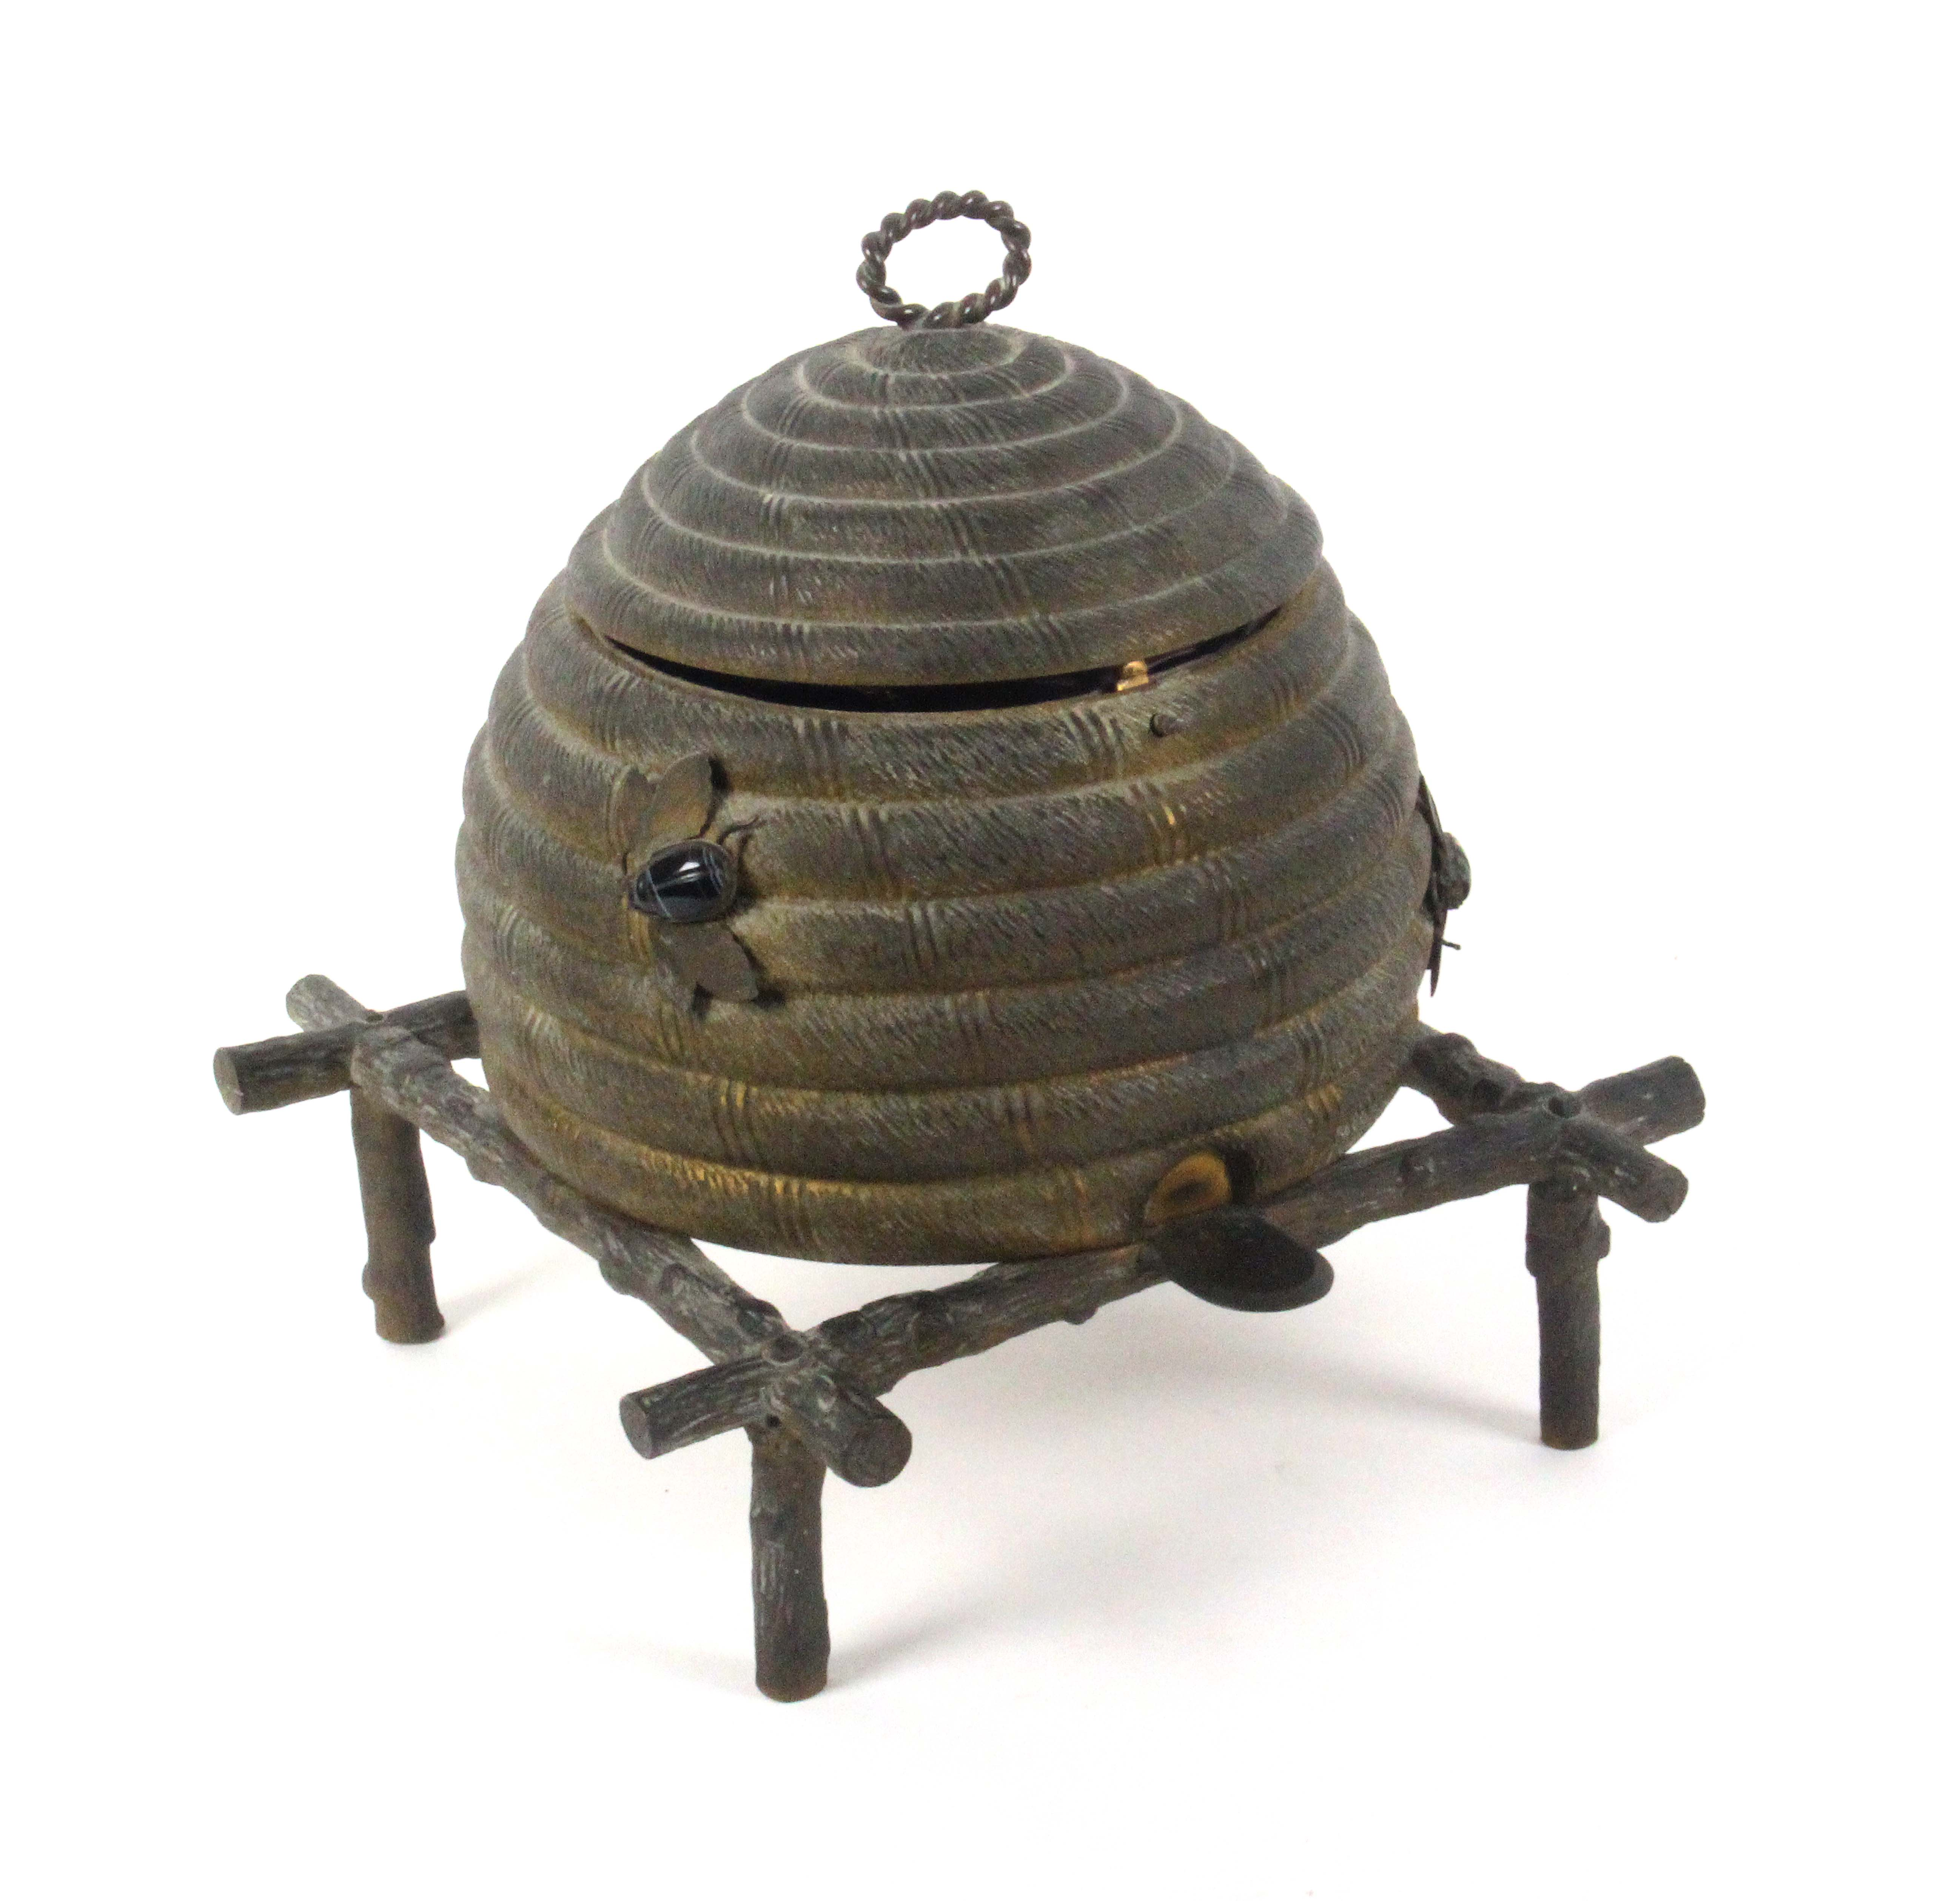 An unusual gilt metal sewing casket in the form of a bee skep, circa 1870, the surface dull,